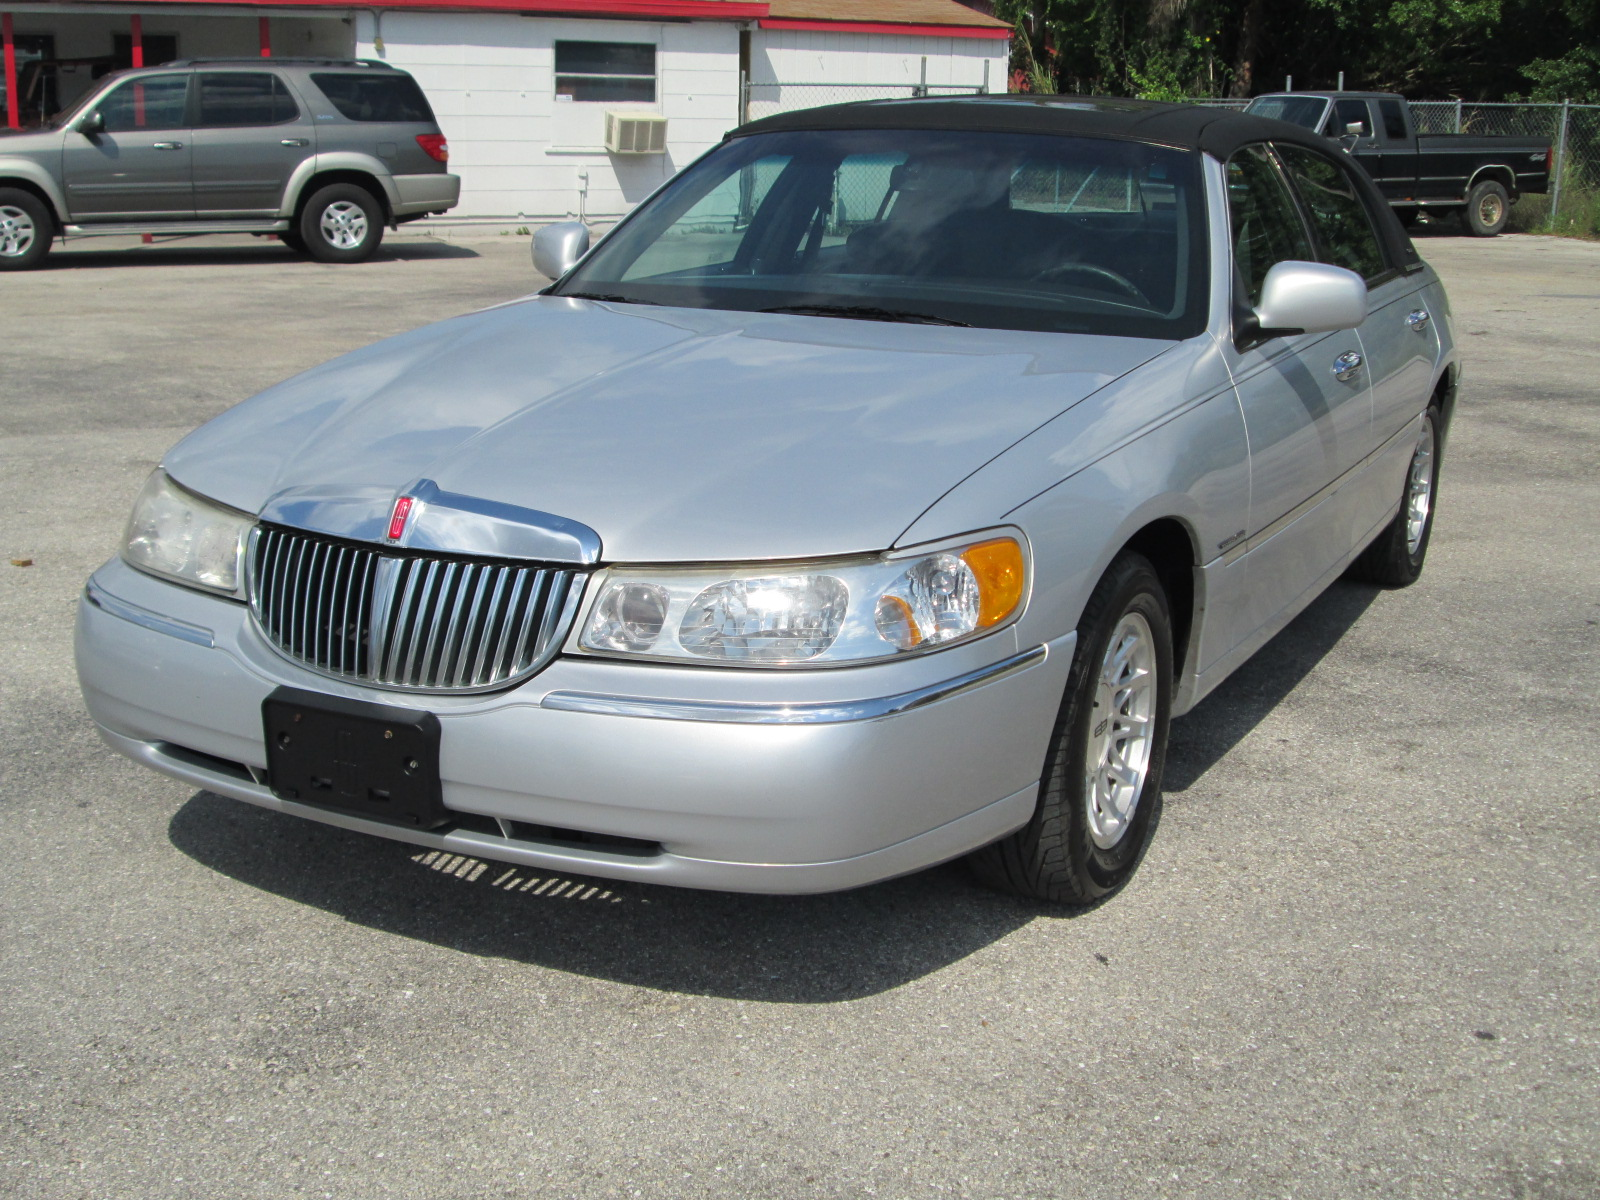 1998 Lincoln Town Car - Exterior Pictures